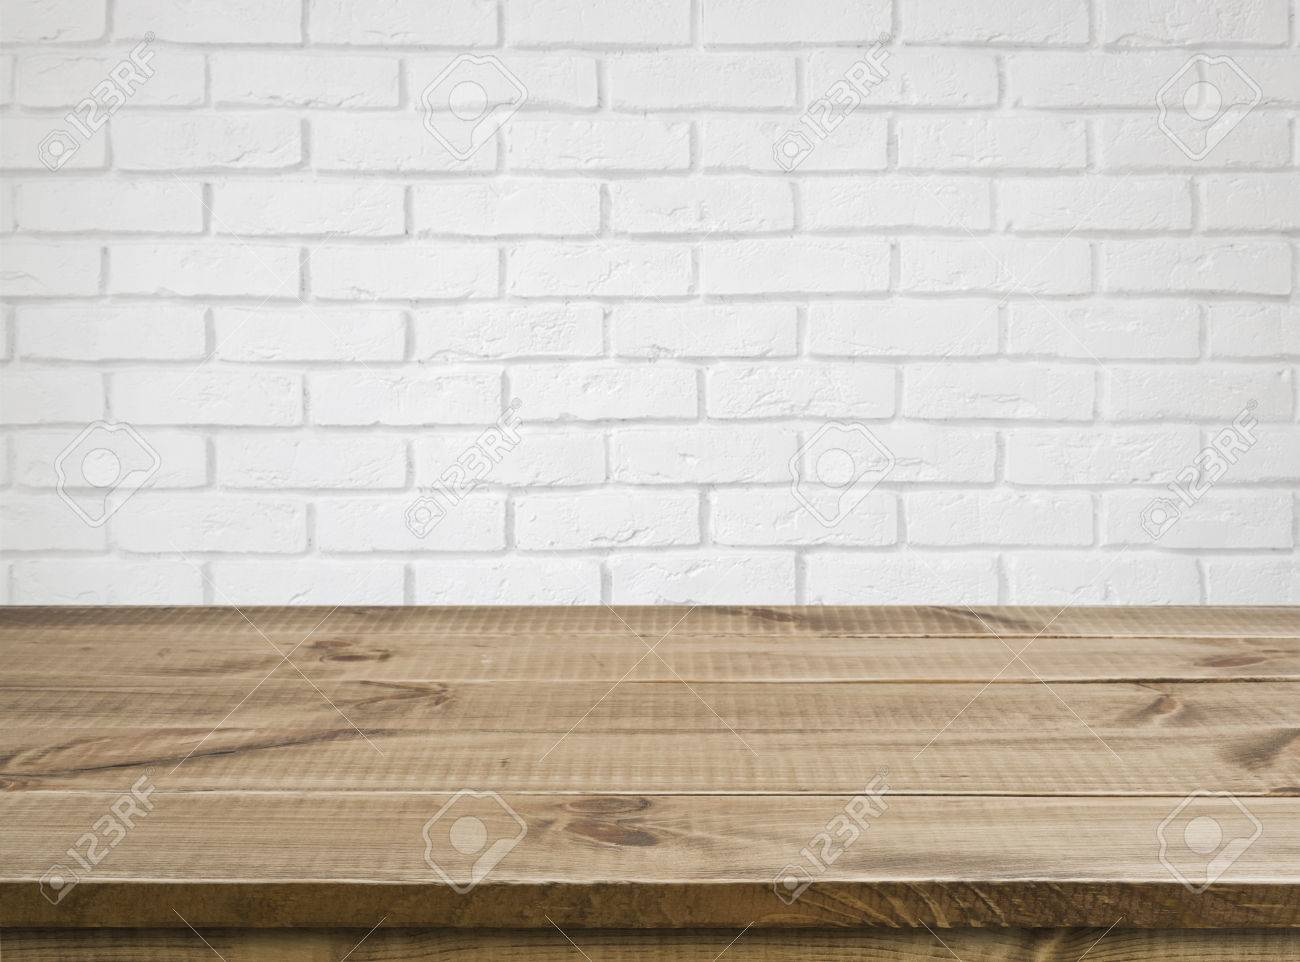 White wooden table texture - Rough Wooden Texture Table Over Defocused White Brick Wall Background Stock Photo 59026546